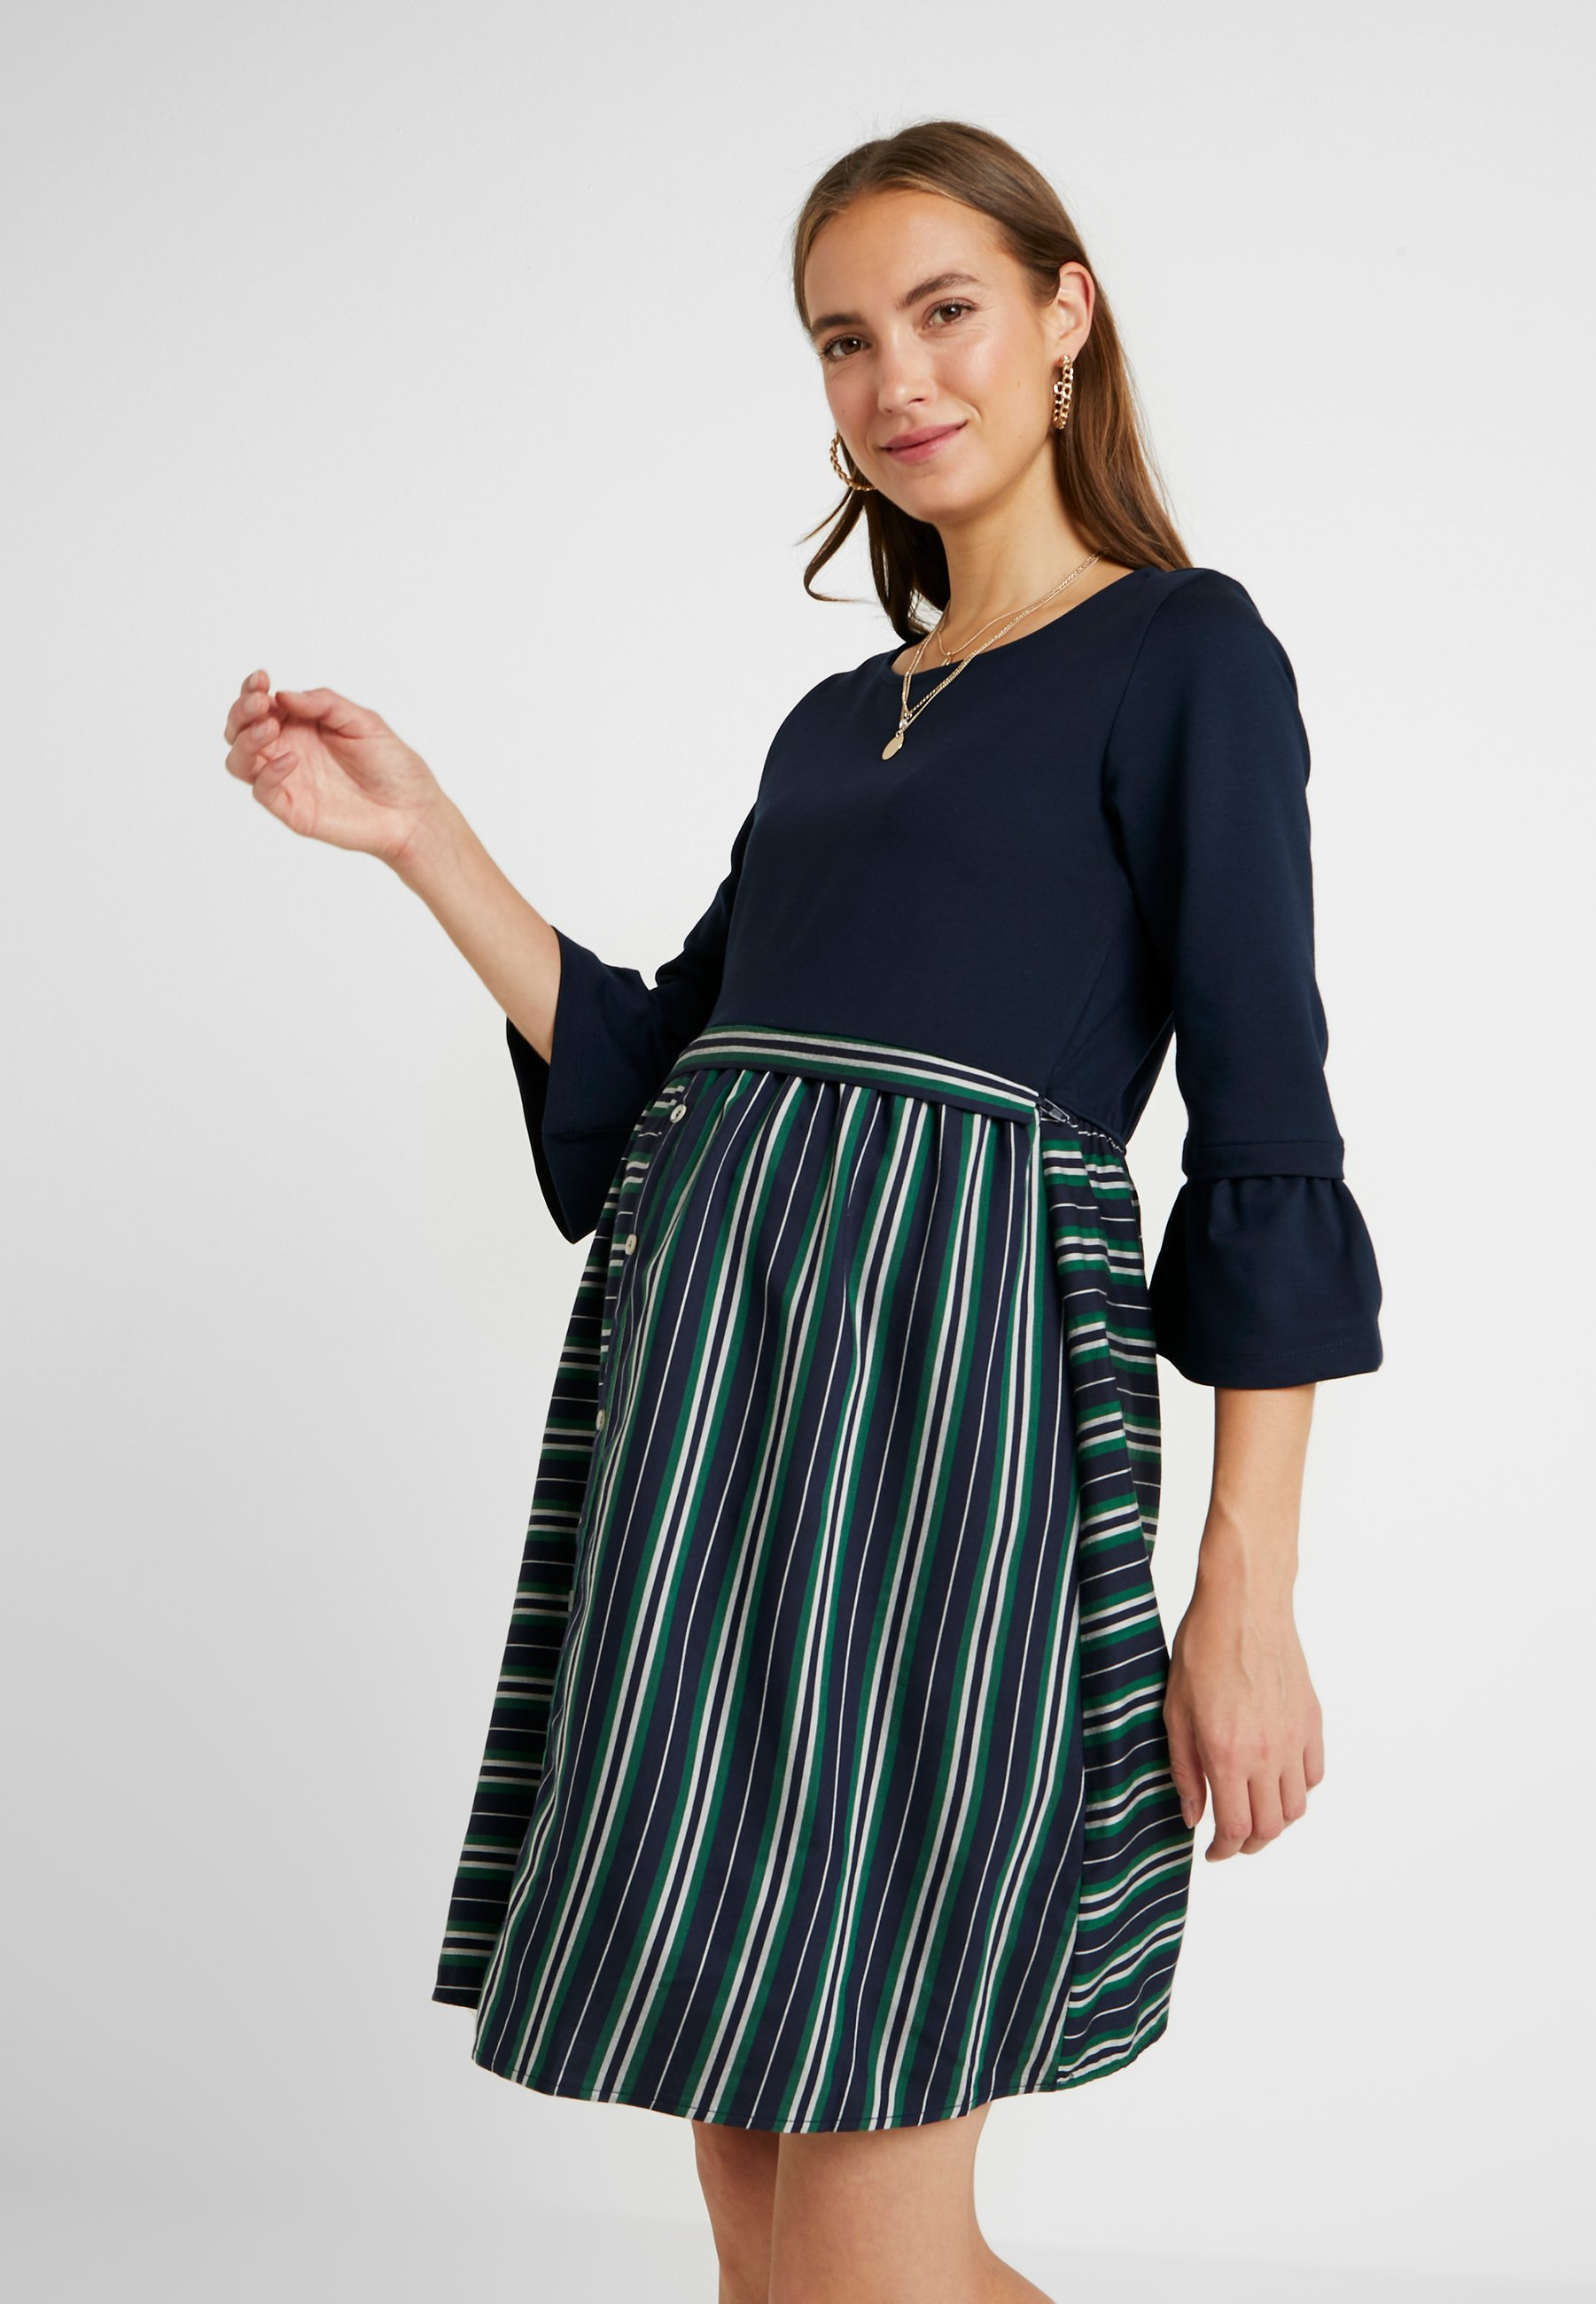 NursingRobe Gebe Forest D'été Navy Dress green QthCsxrdB